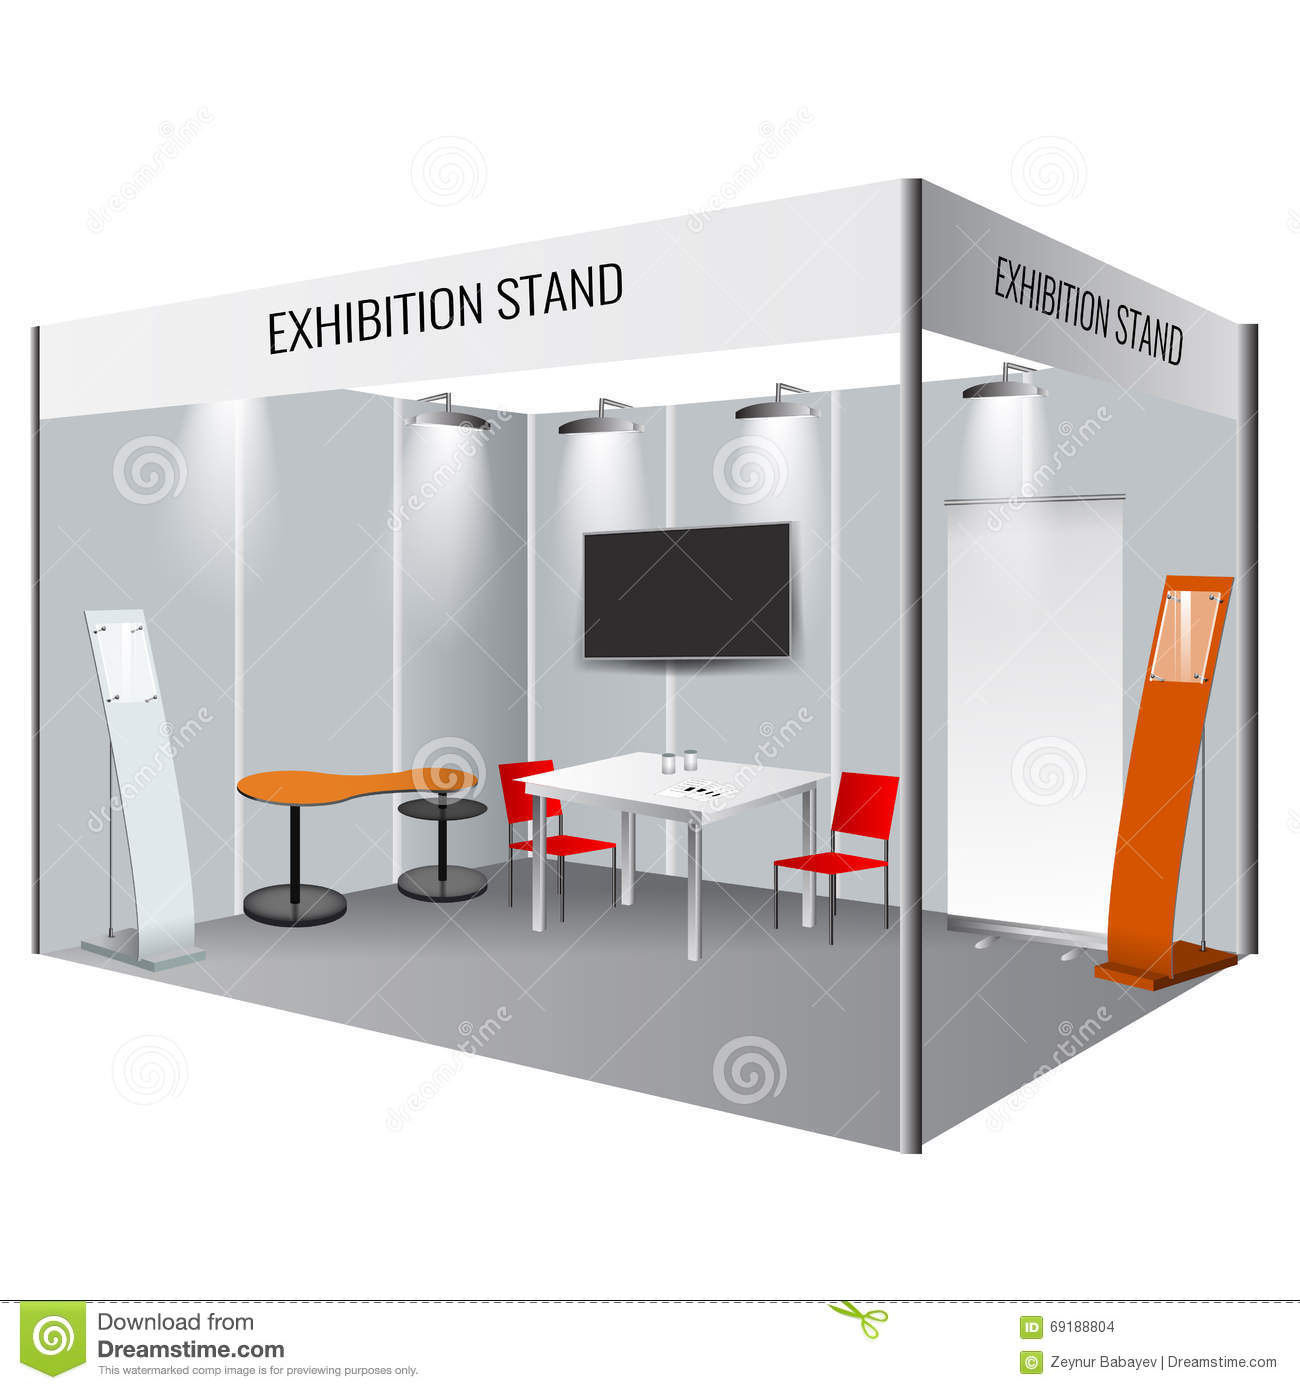 Exhibition Booth Free Download : Creative exhibition stand design booth template